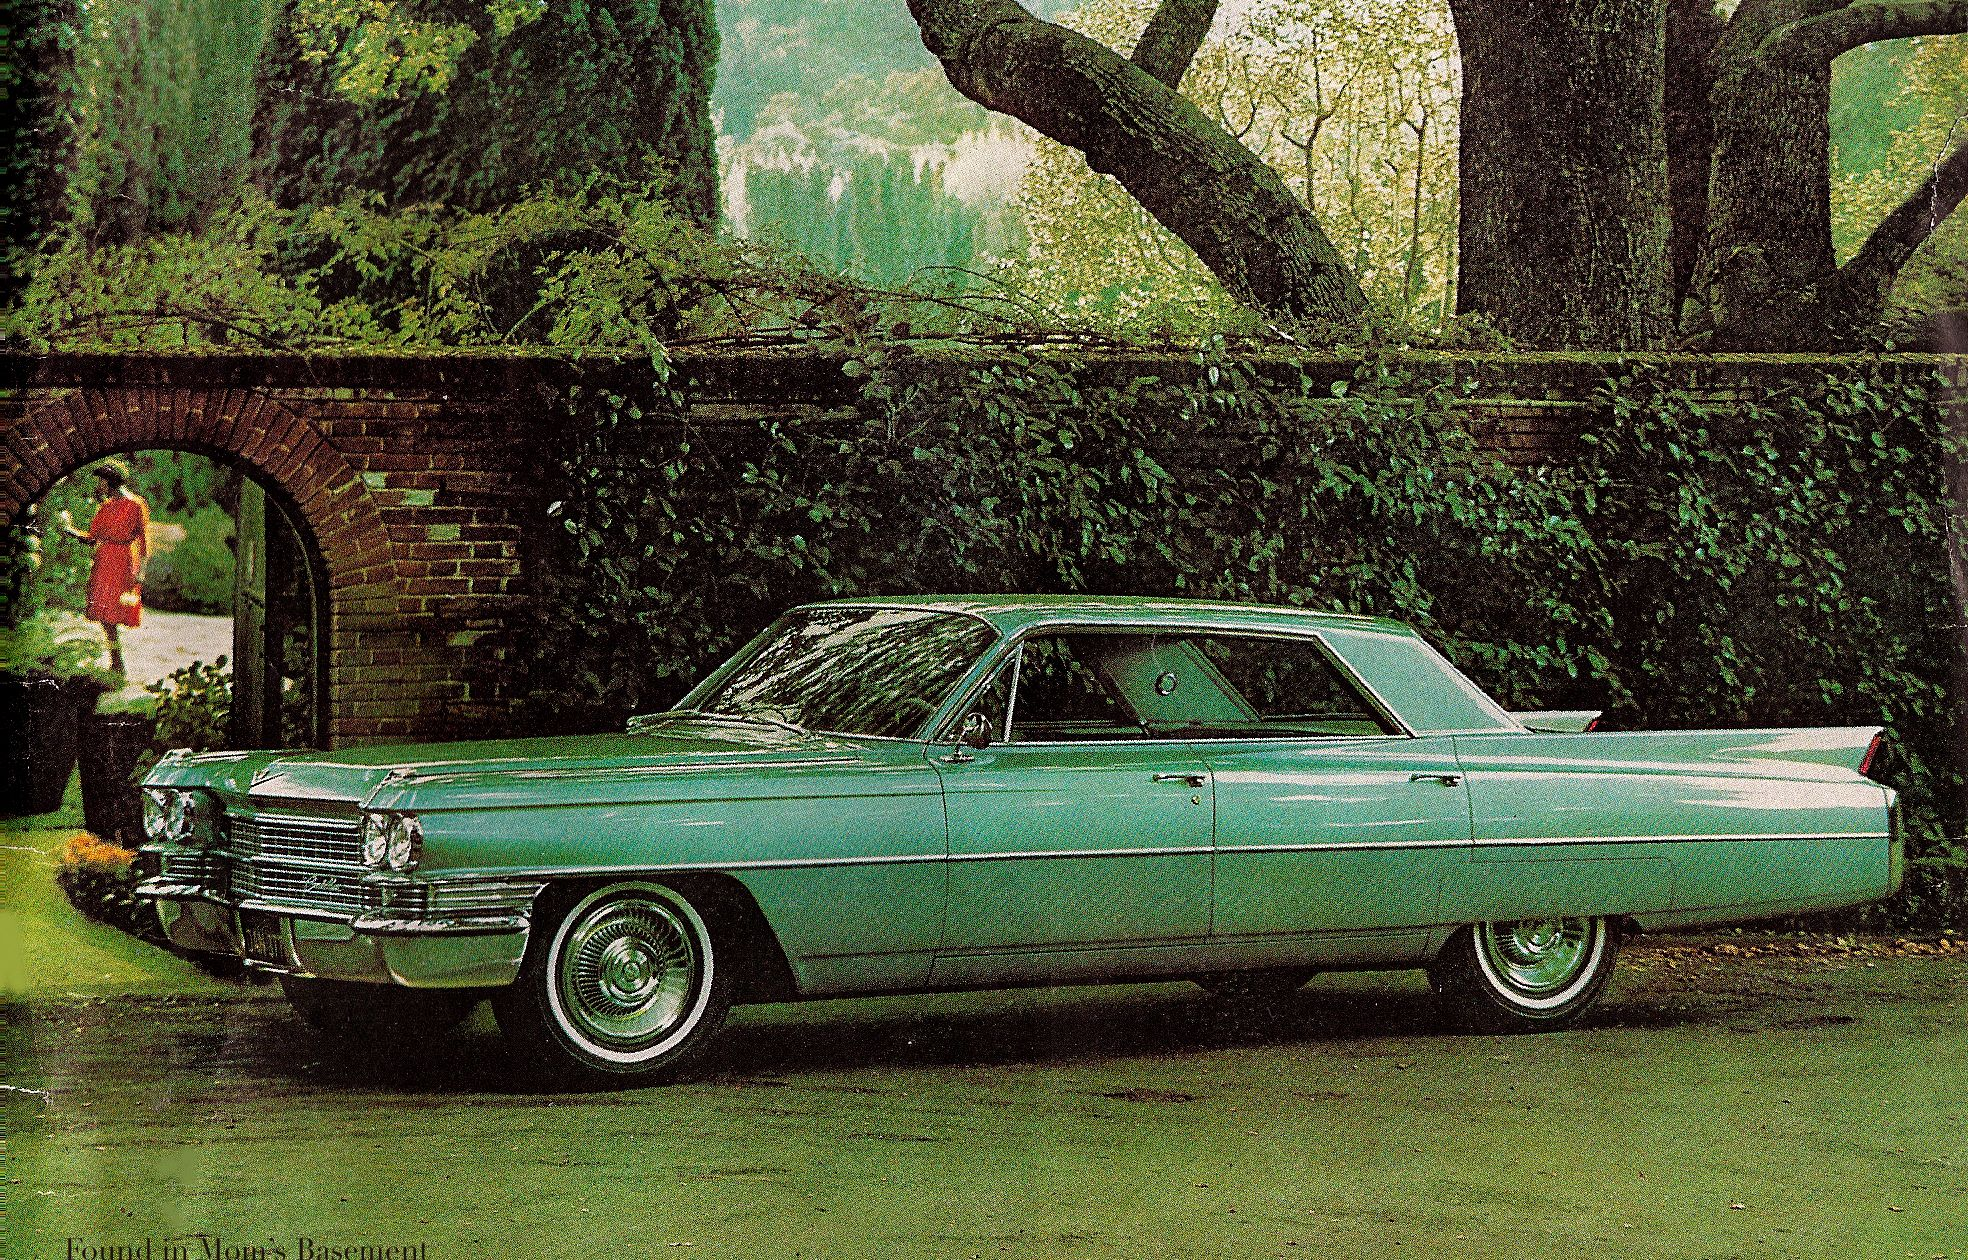 e083346b821c6ca594ebdb5aa59f14ec Cool Review About 1968 Cadillac